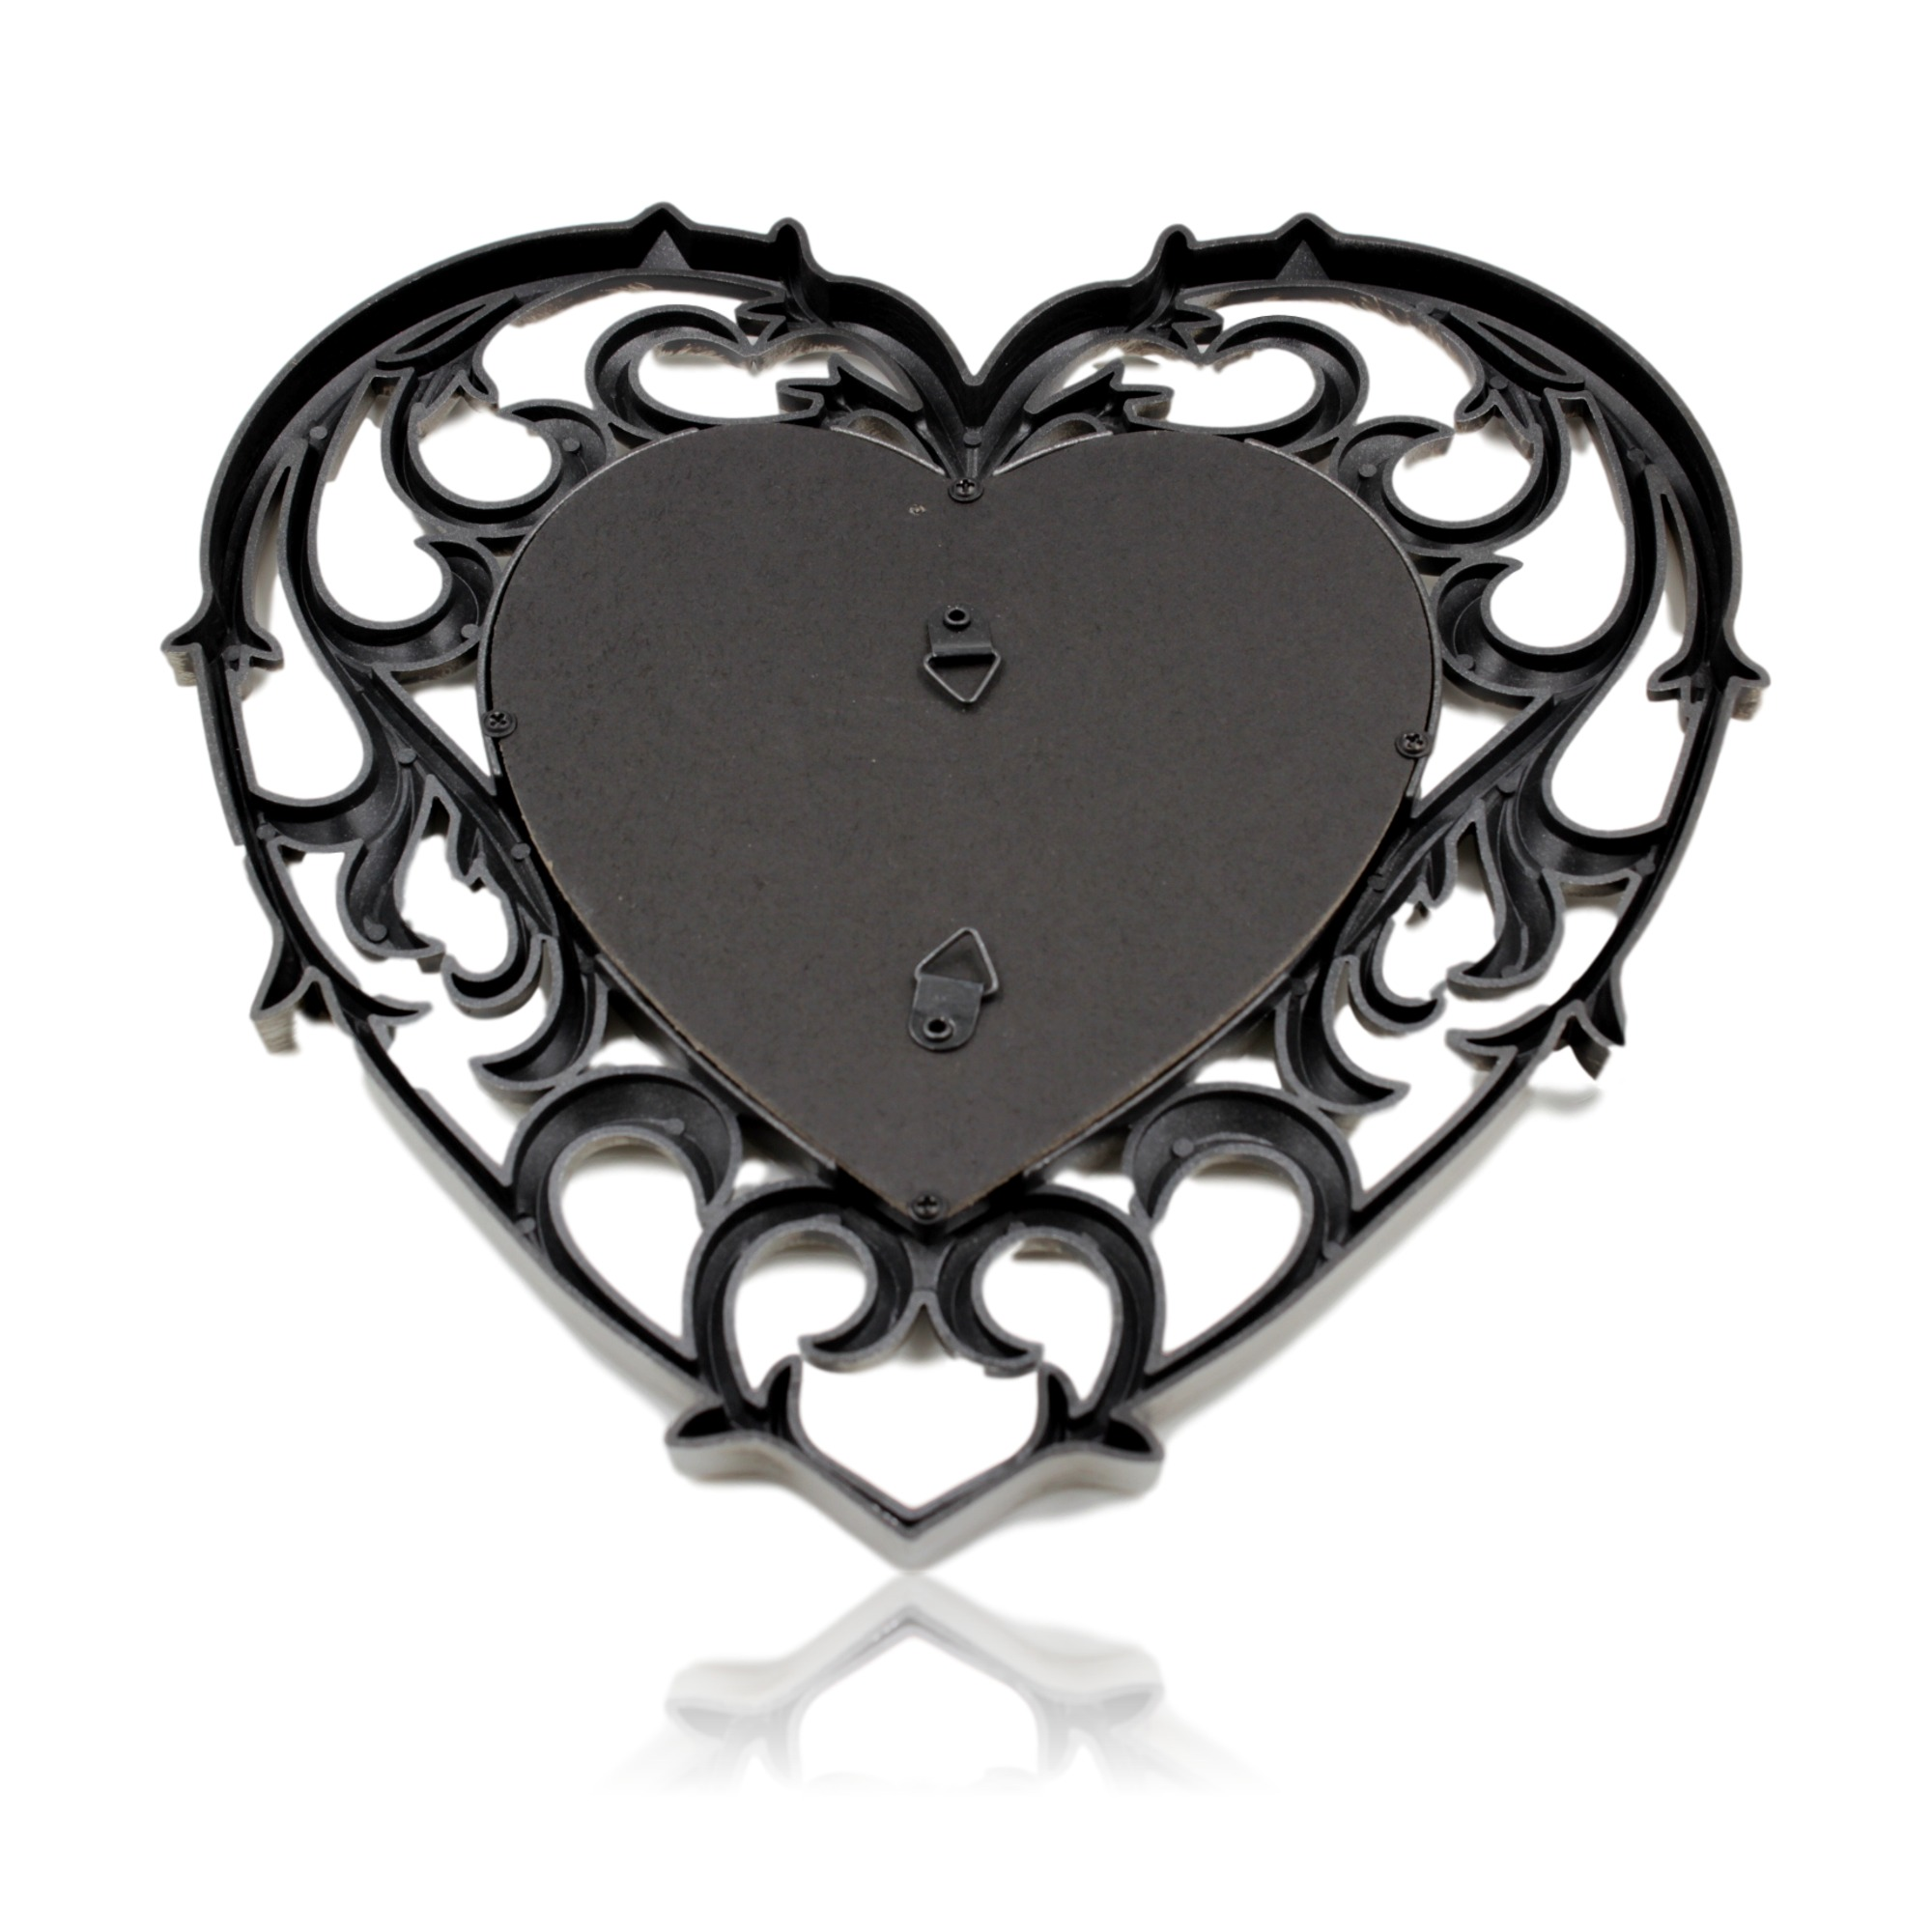 1x Small Heart Shaped Mirror Plastic Antique Silver Frame 25cm X 25cm Blendboutique